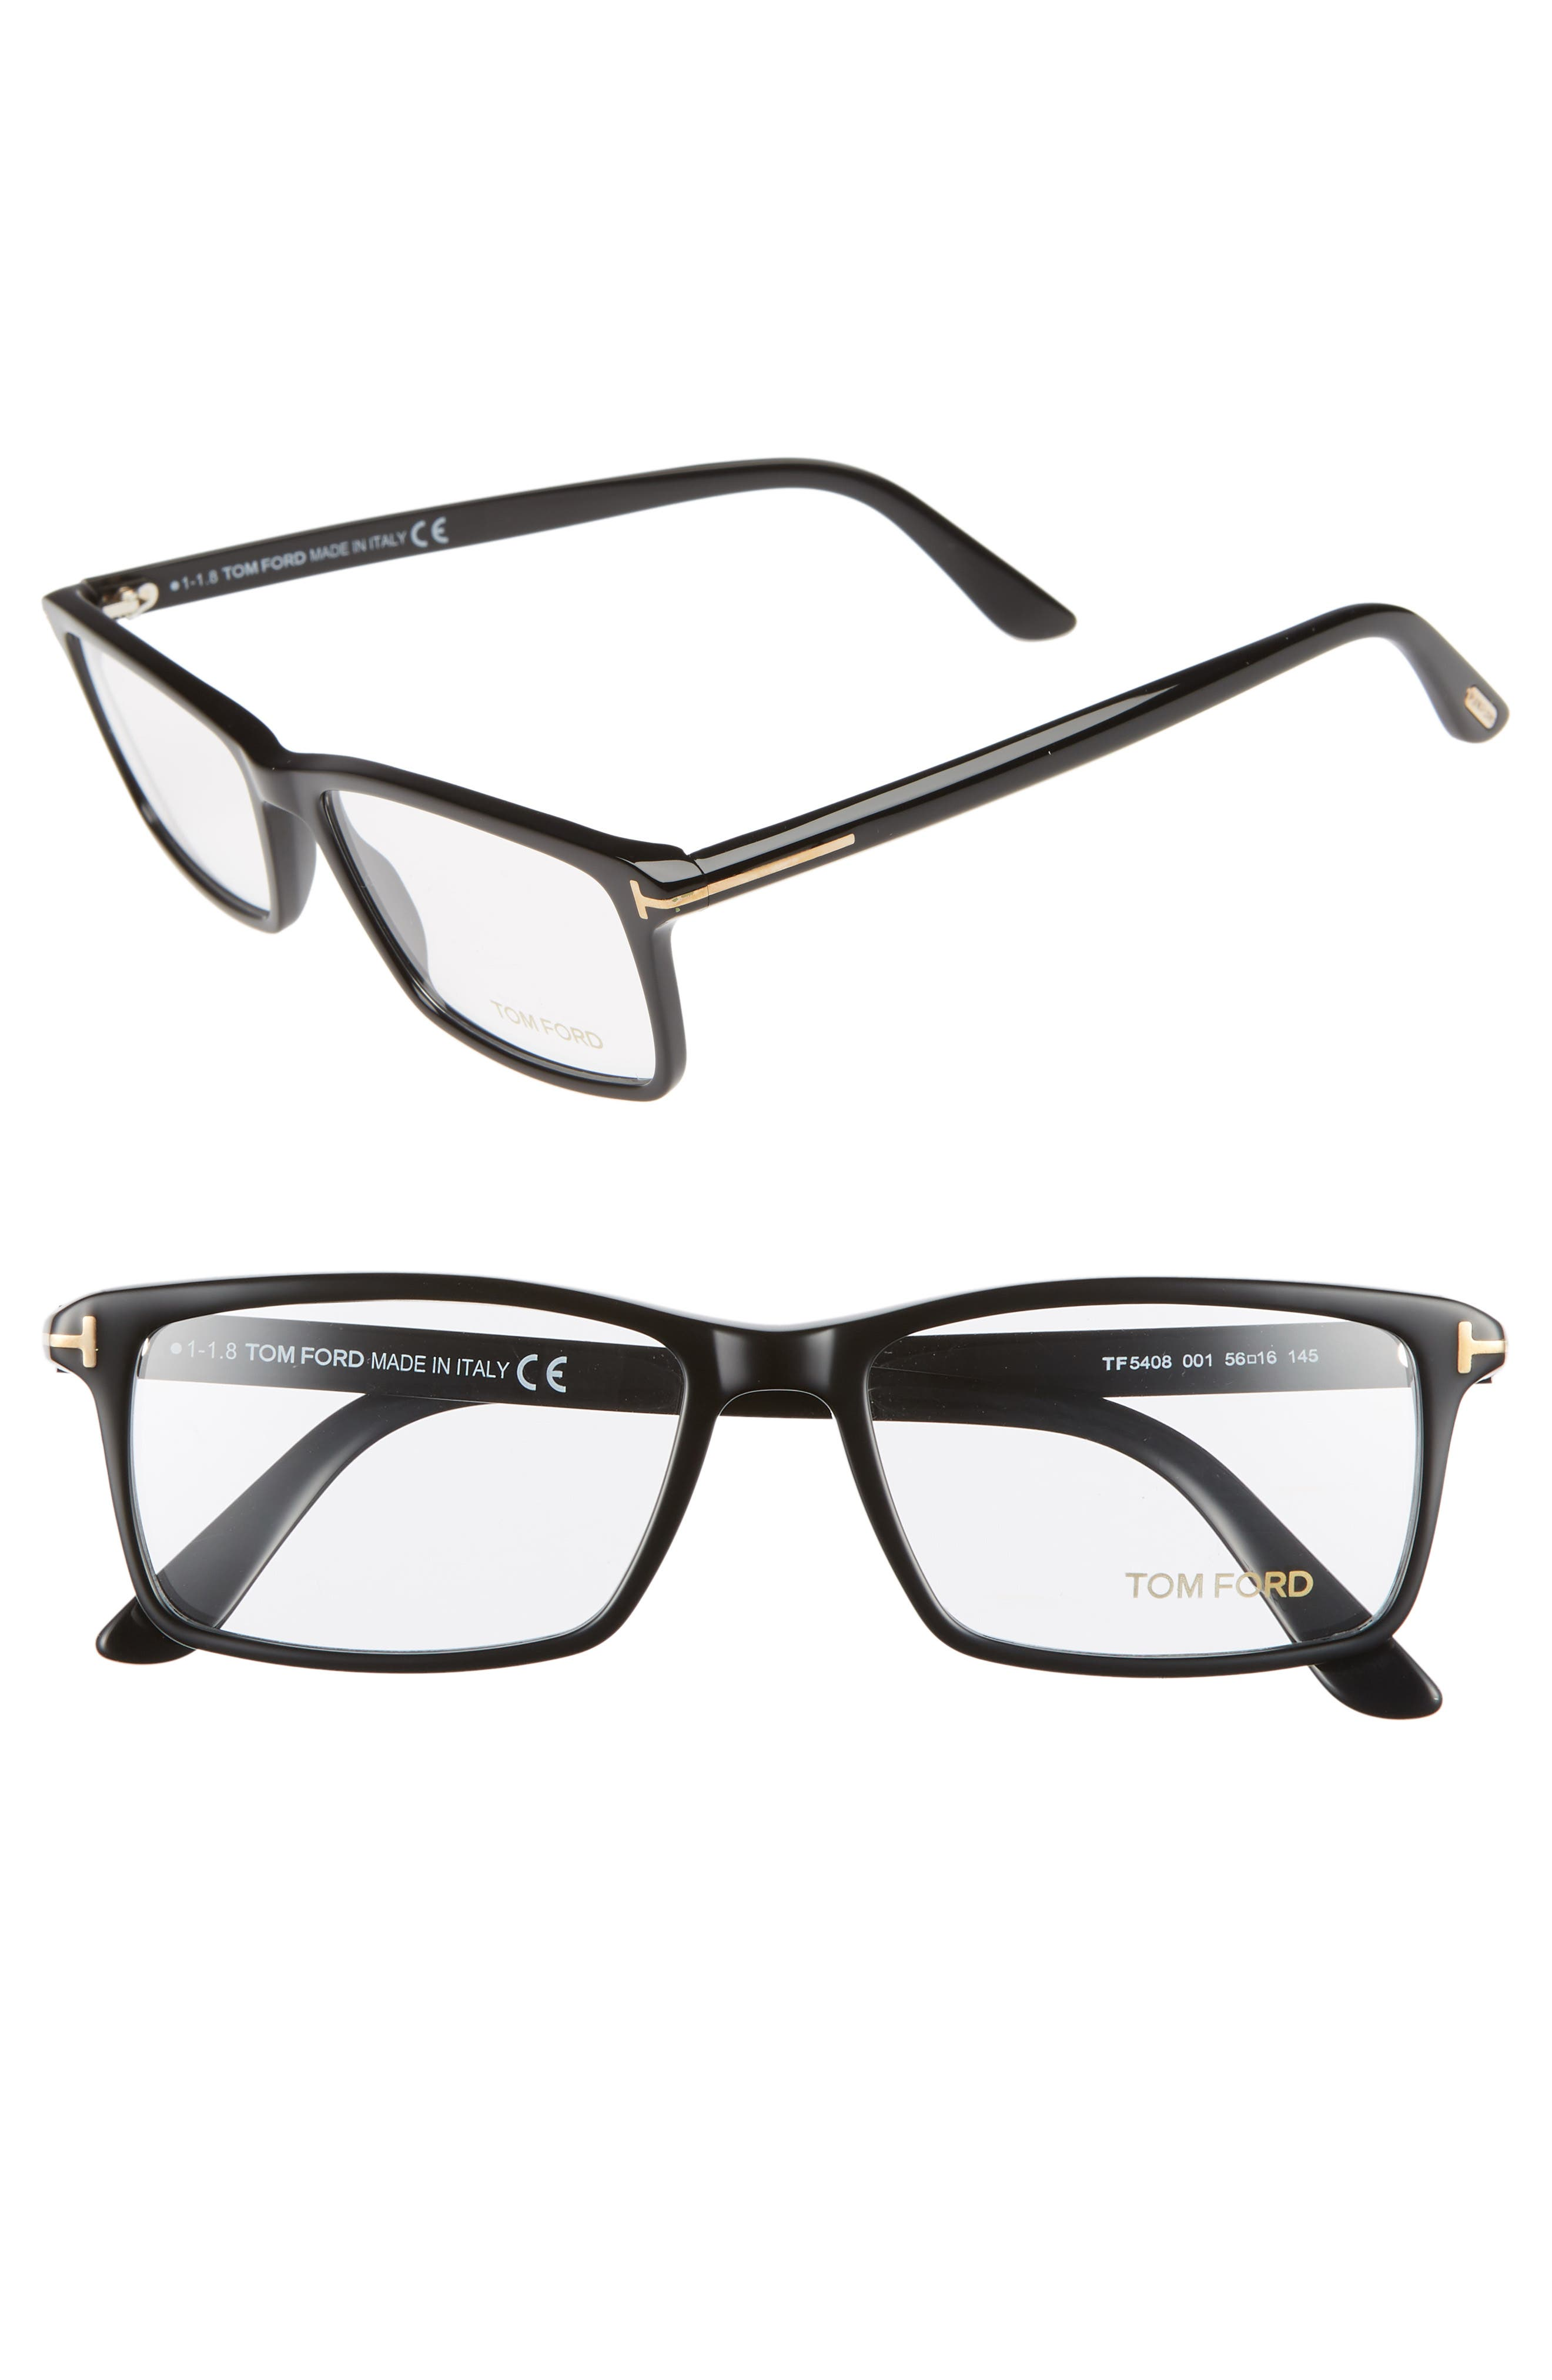 56mm Rectangle Optical Glasses,                             Main thumbnail 1, color,                             SHINY BLACK/ SHINY ROSE GOLD